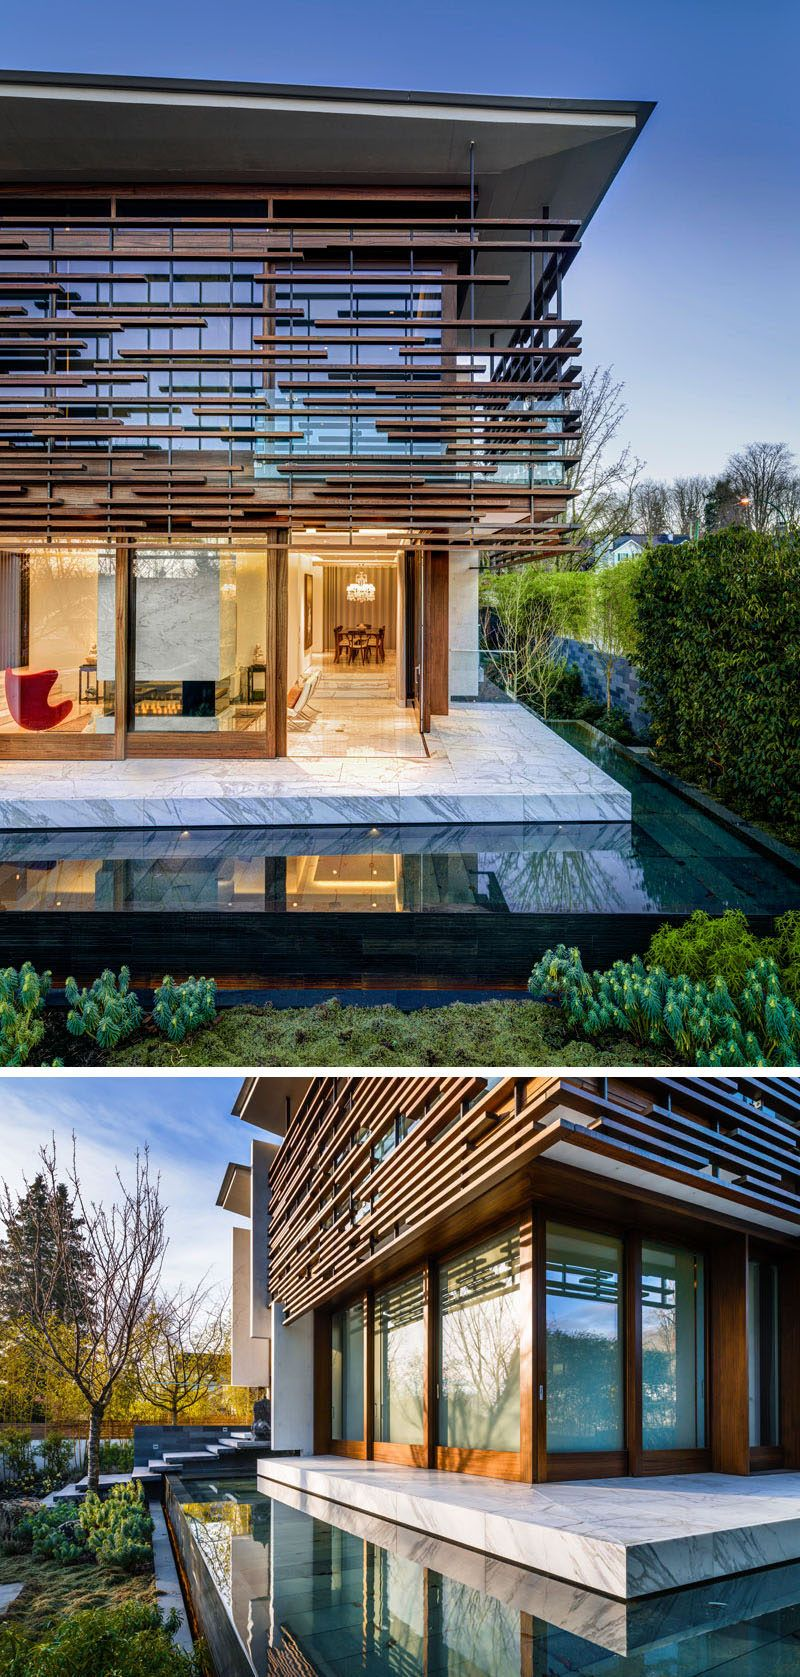 Timber Slats Cover The Upper Floor Of This Contemporary